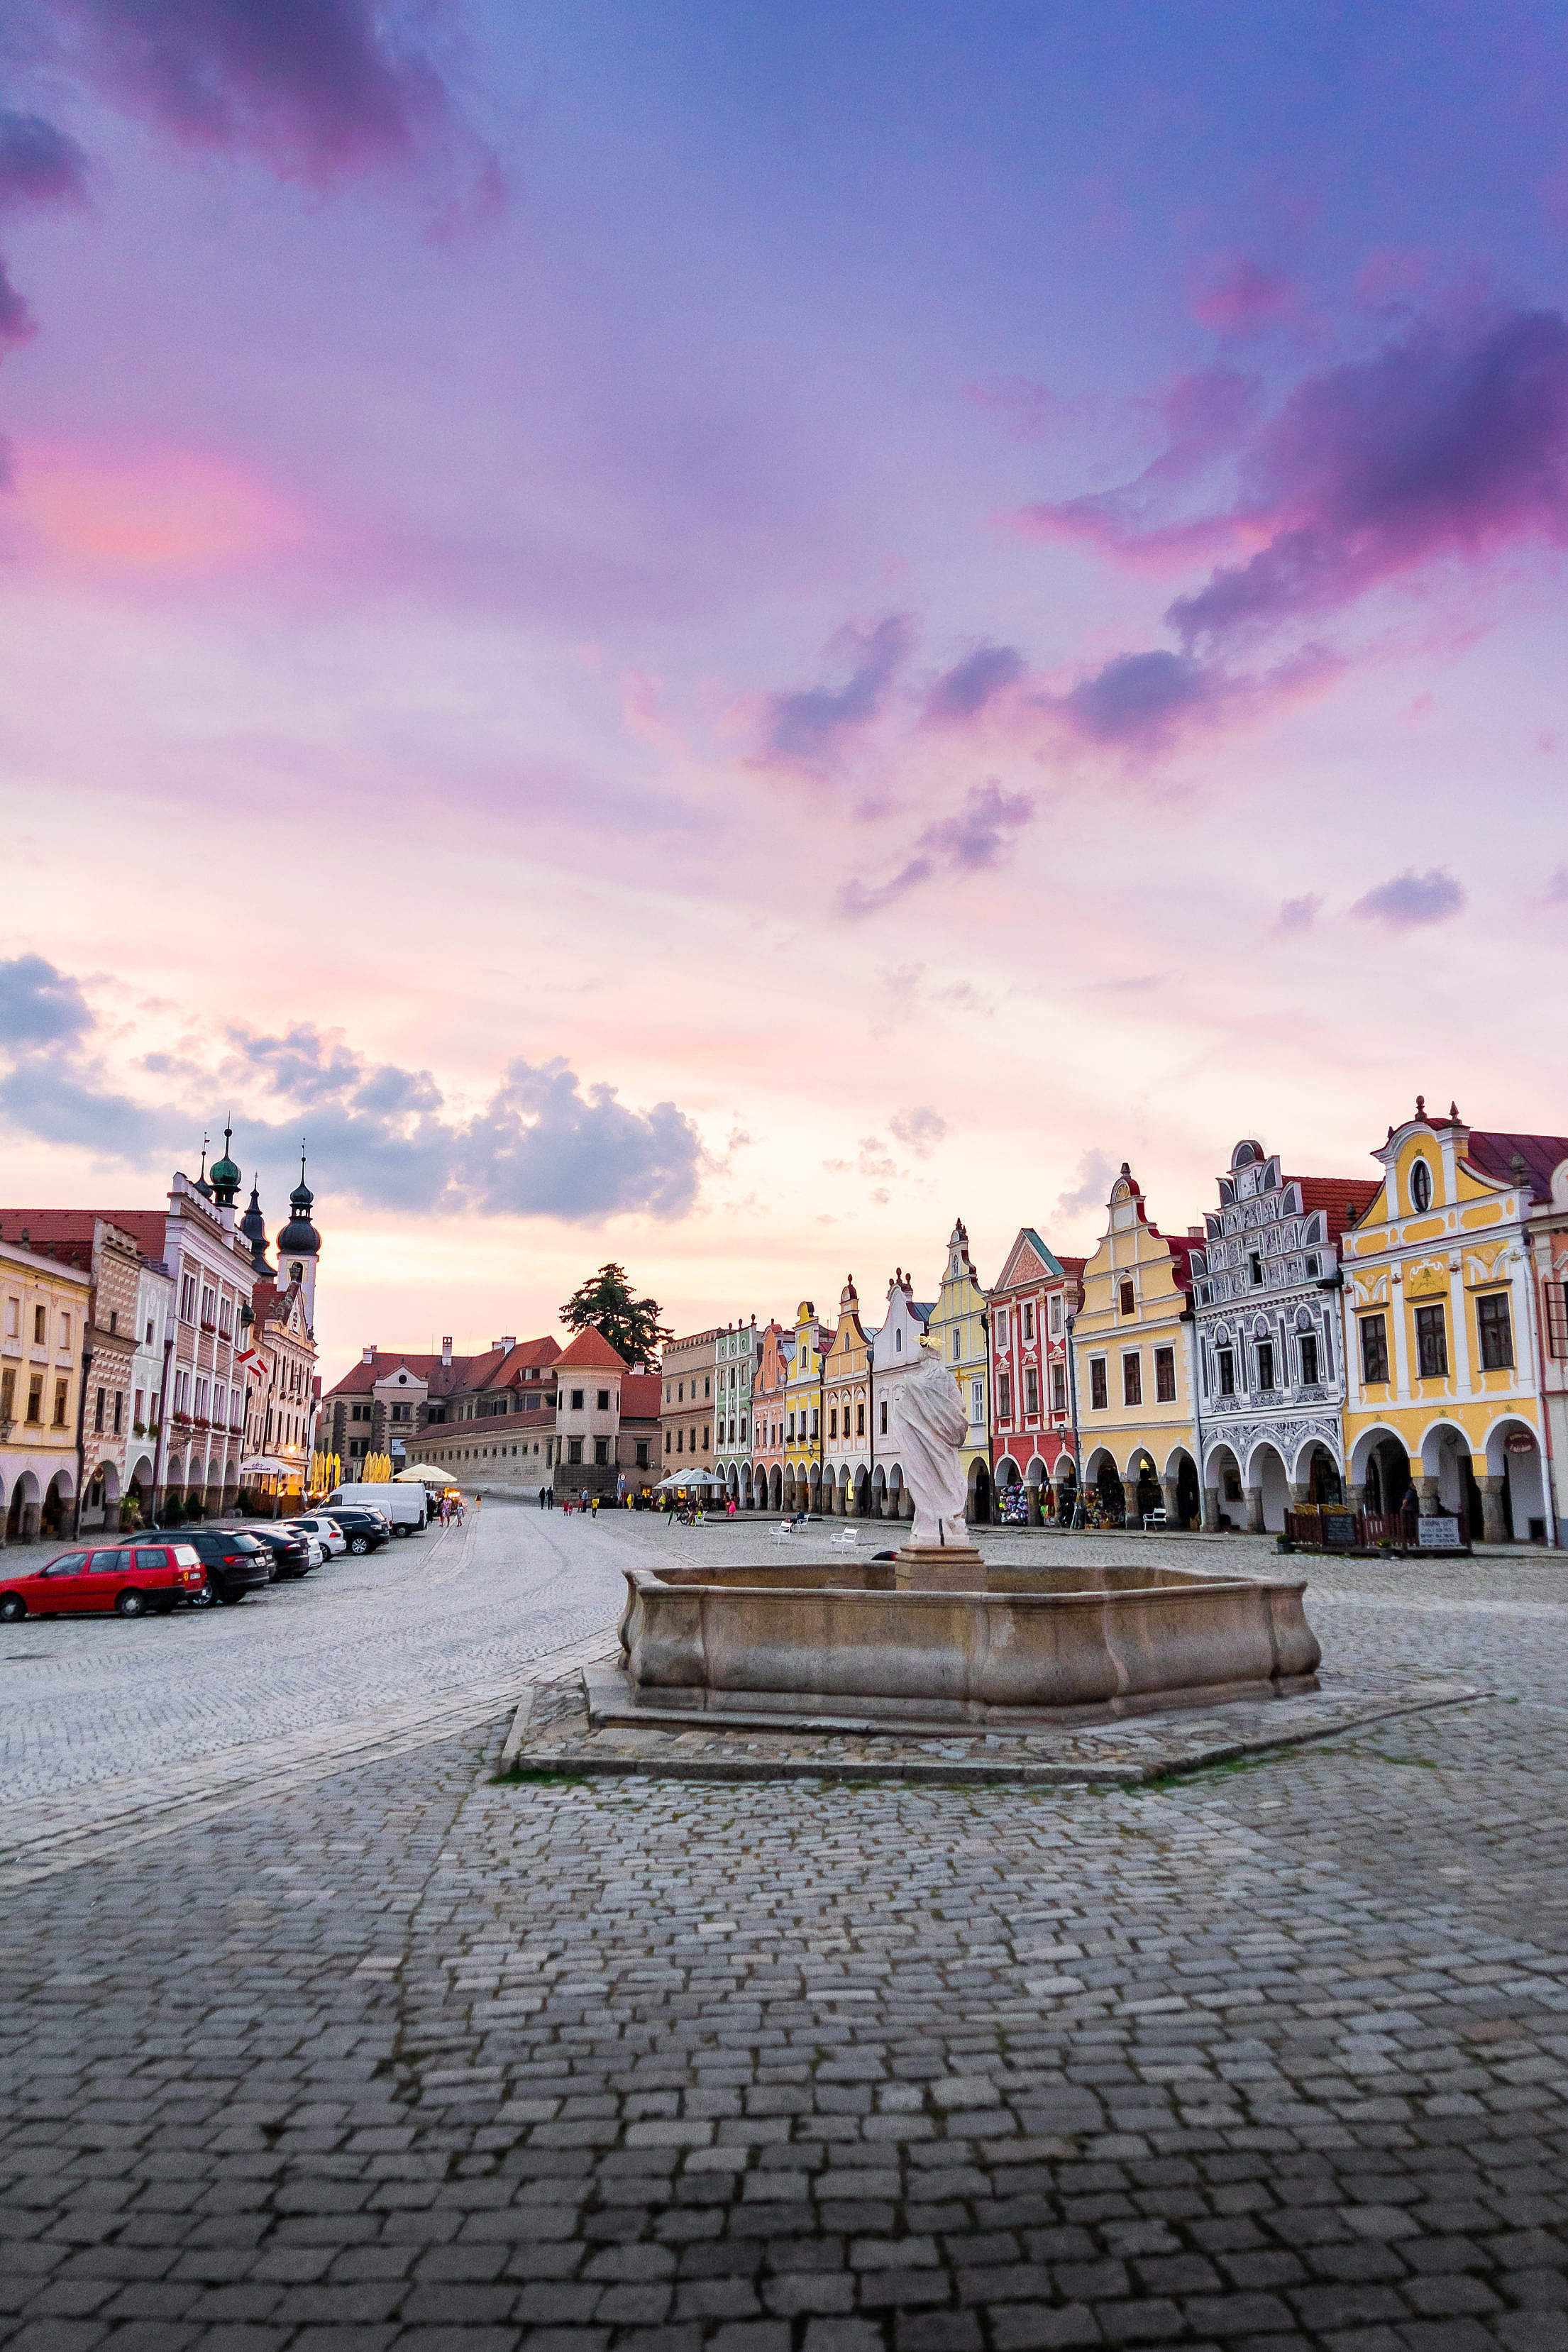 Square with a Fountain in Telč, Czech Republic Free Stock Photo